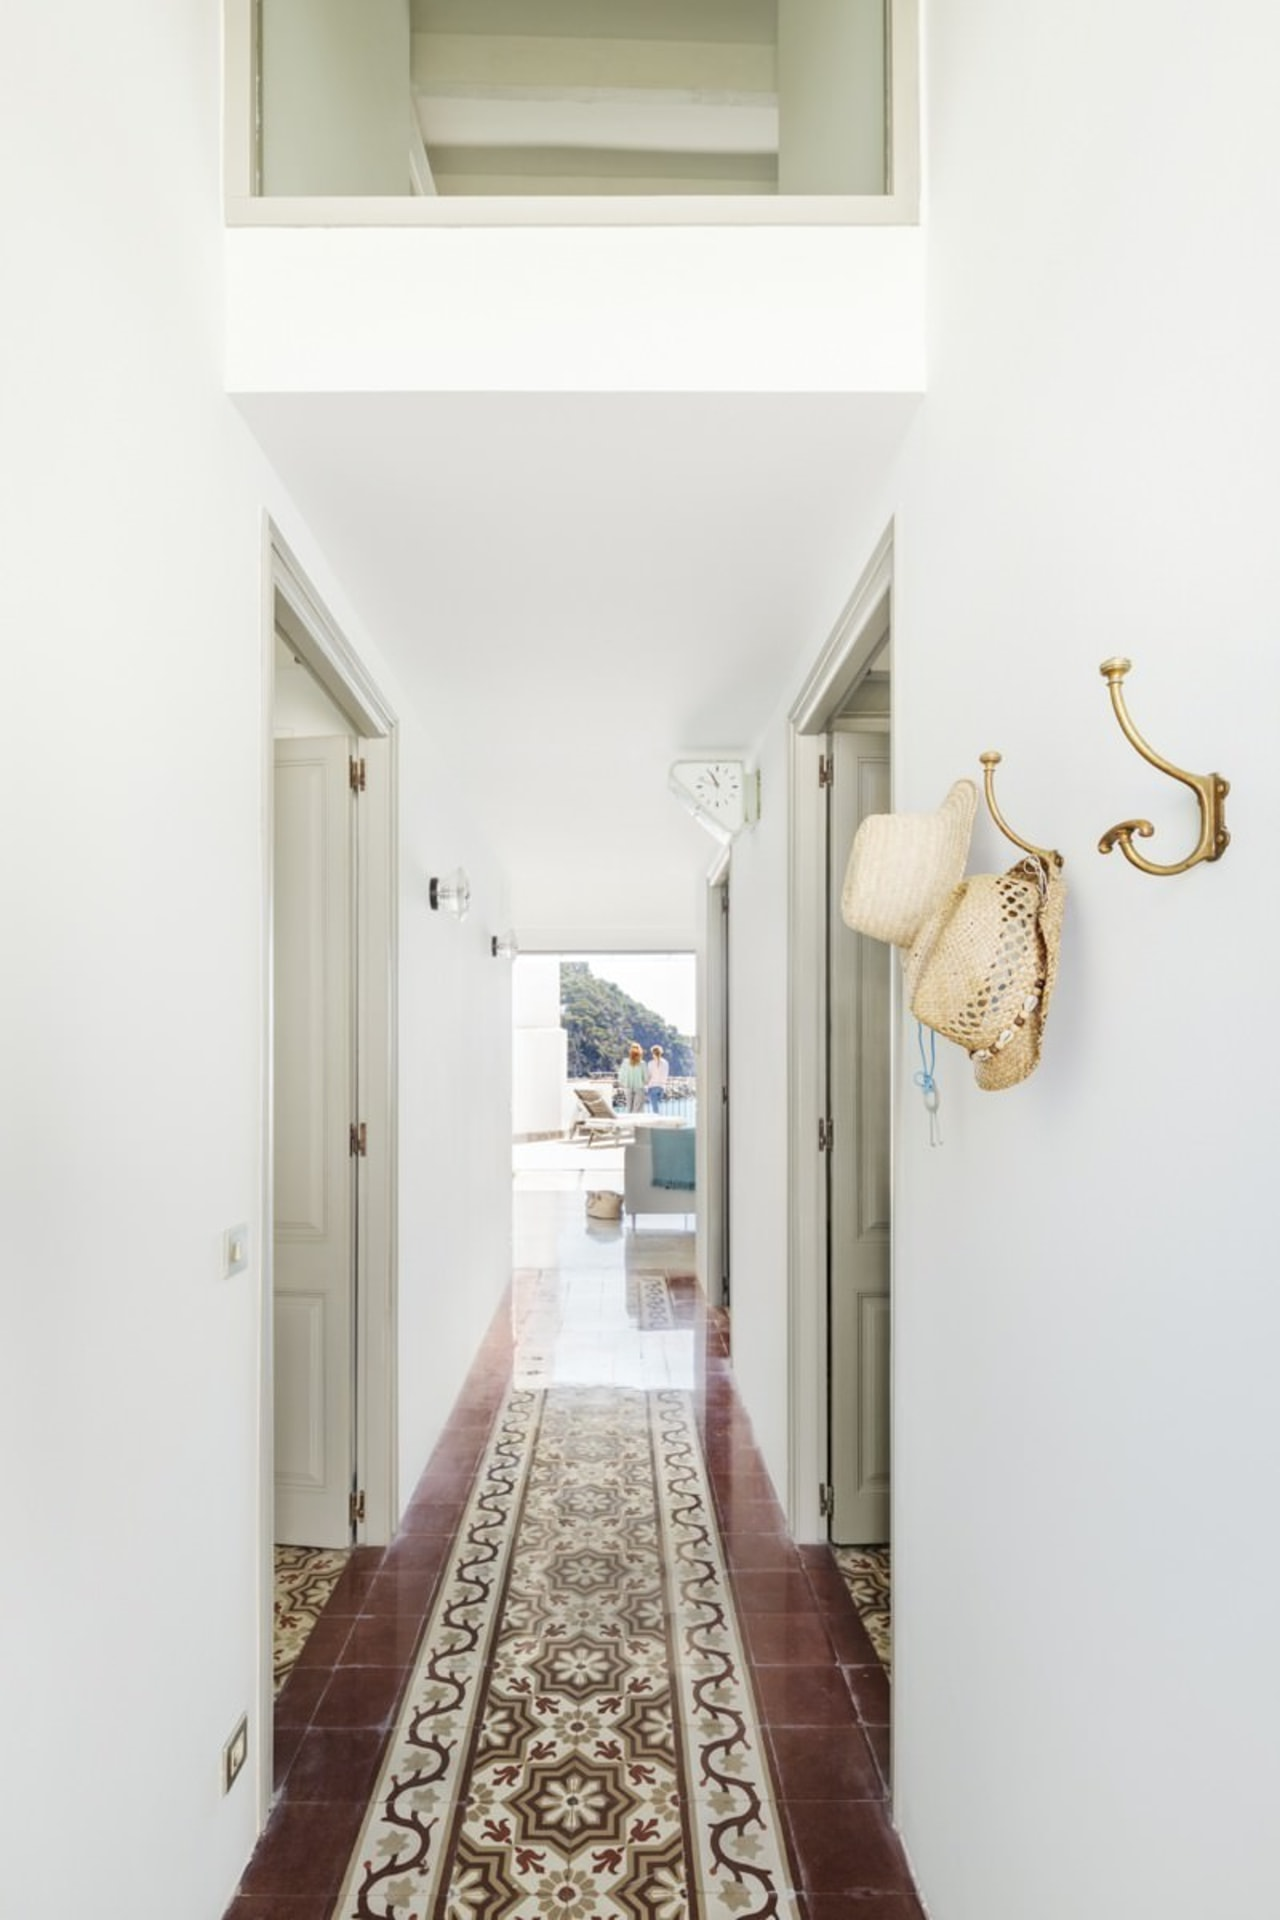 The hallway is largely unchanged, which certainly seems ceiling, floor, home, house, interior design, property, real estate, white